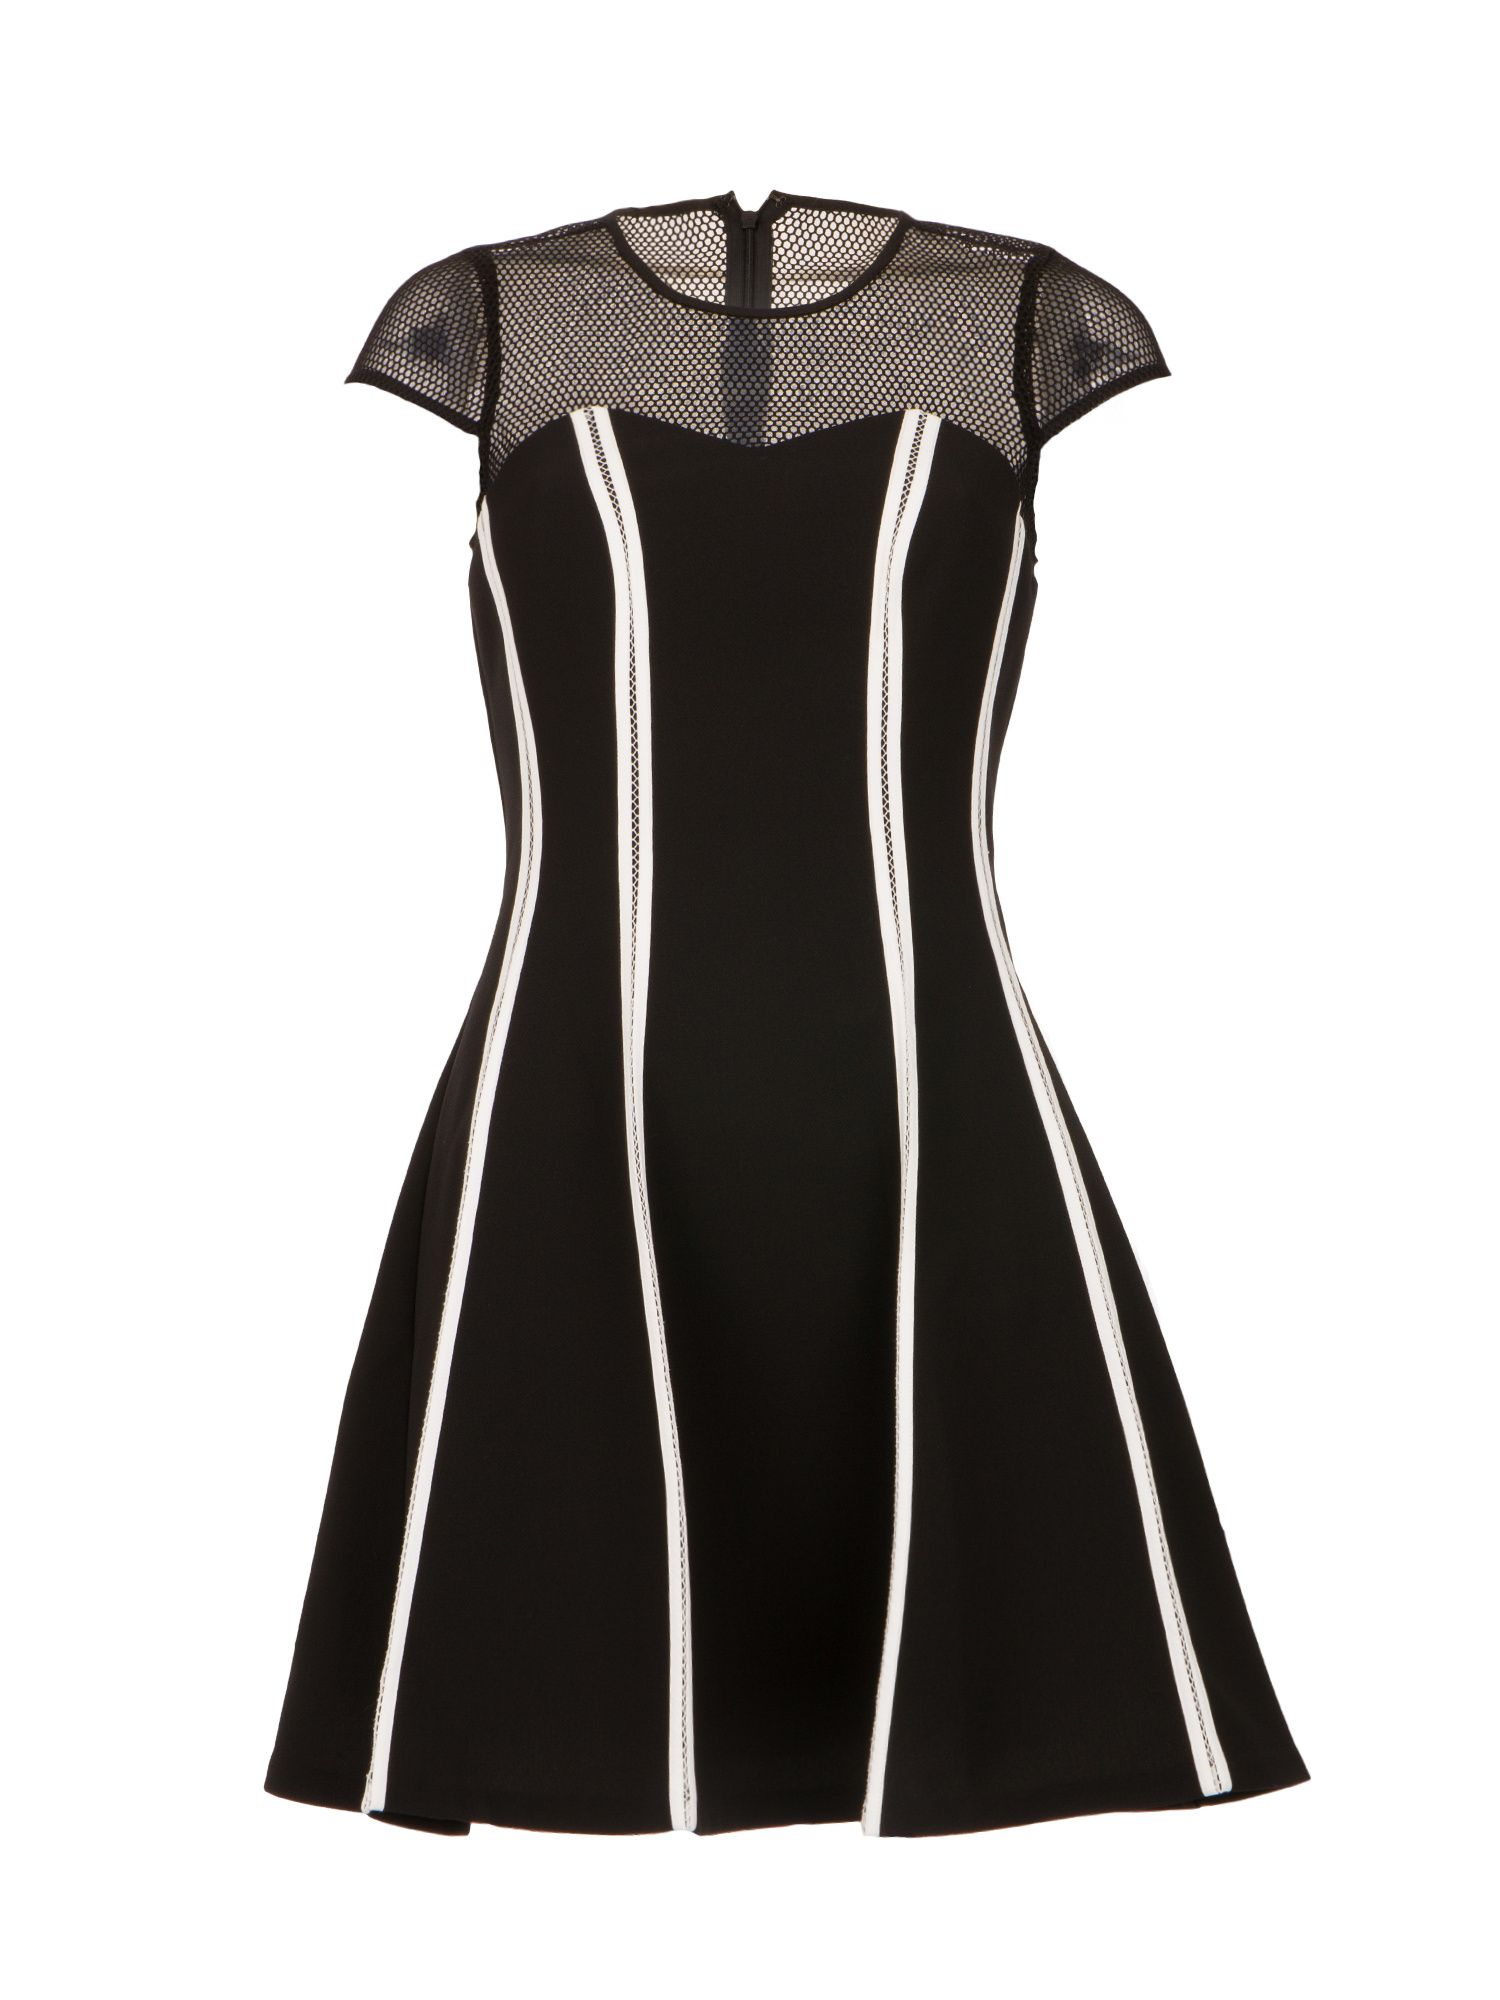 Morgan Contrasting Paneled Dress, Black